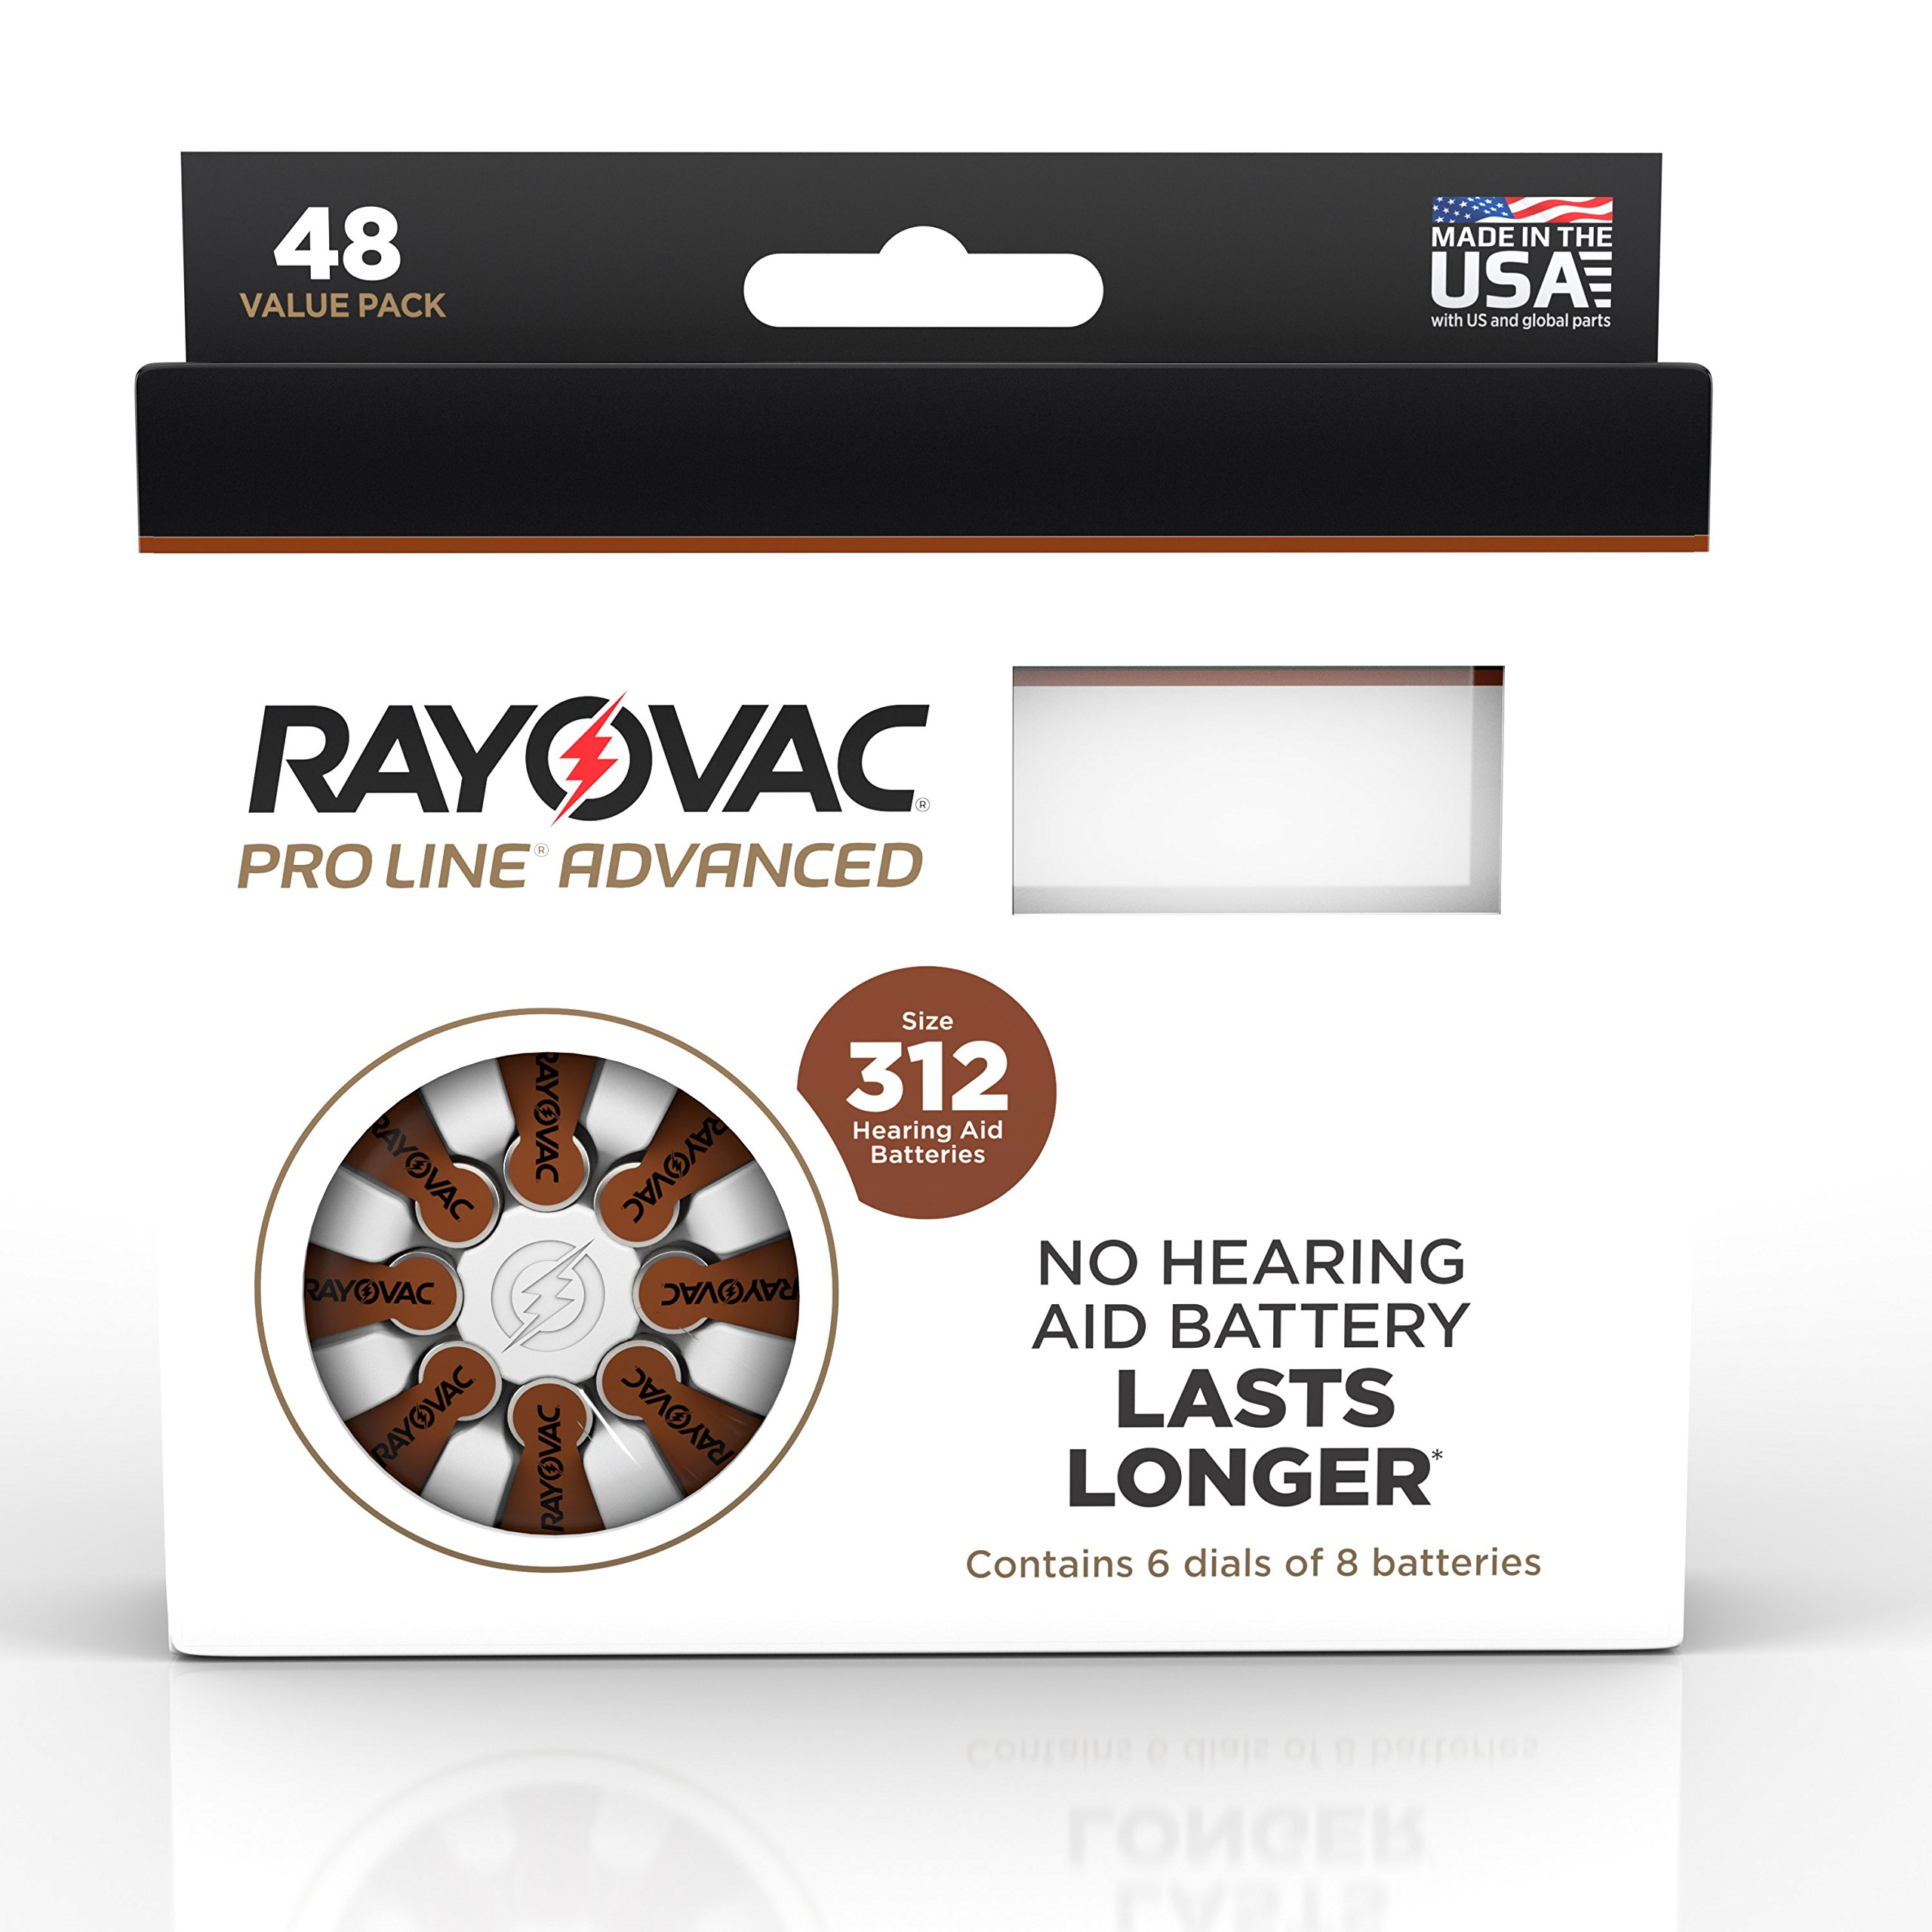 Rayovac Proline Advance Hearing Aid Batteries, Size 312 (48 count) by Product updates made to support full-feature hearing aids